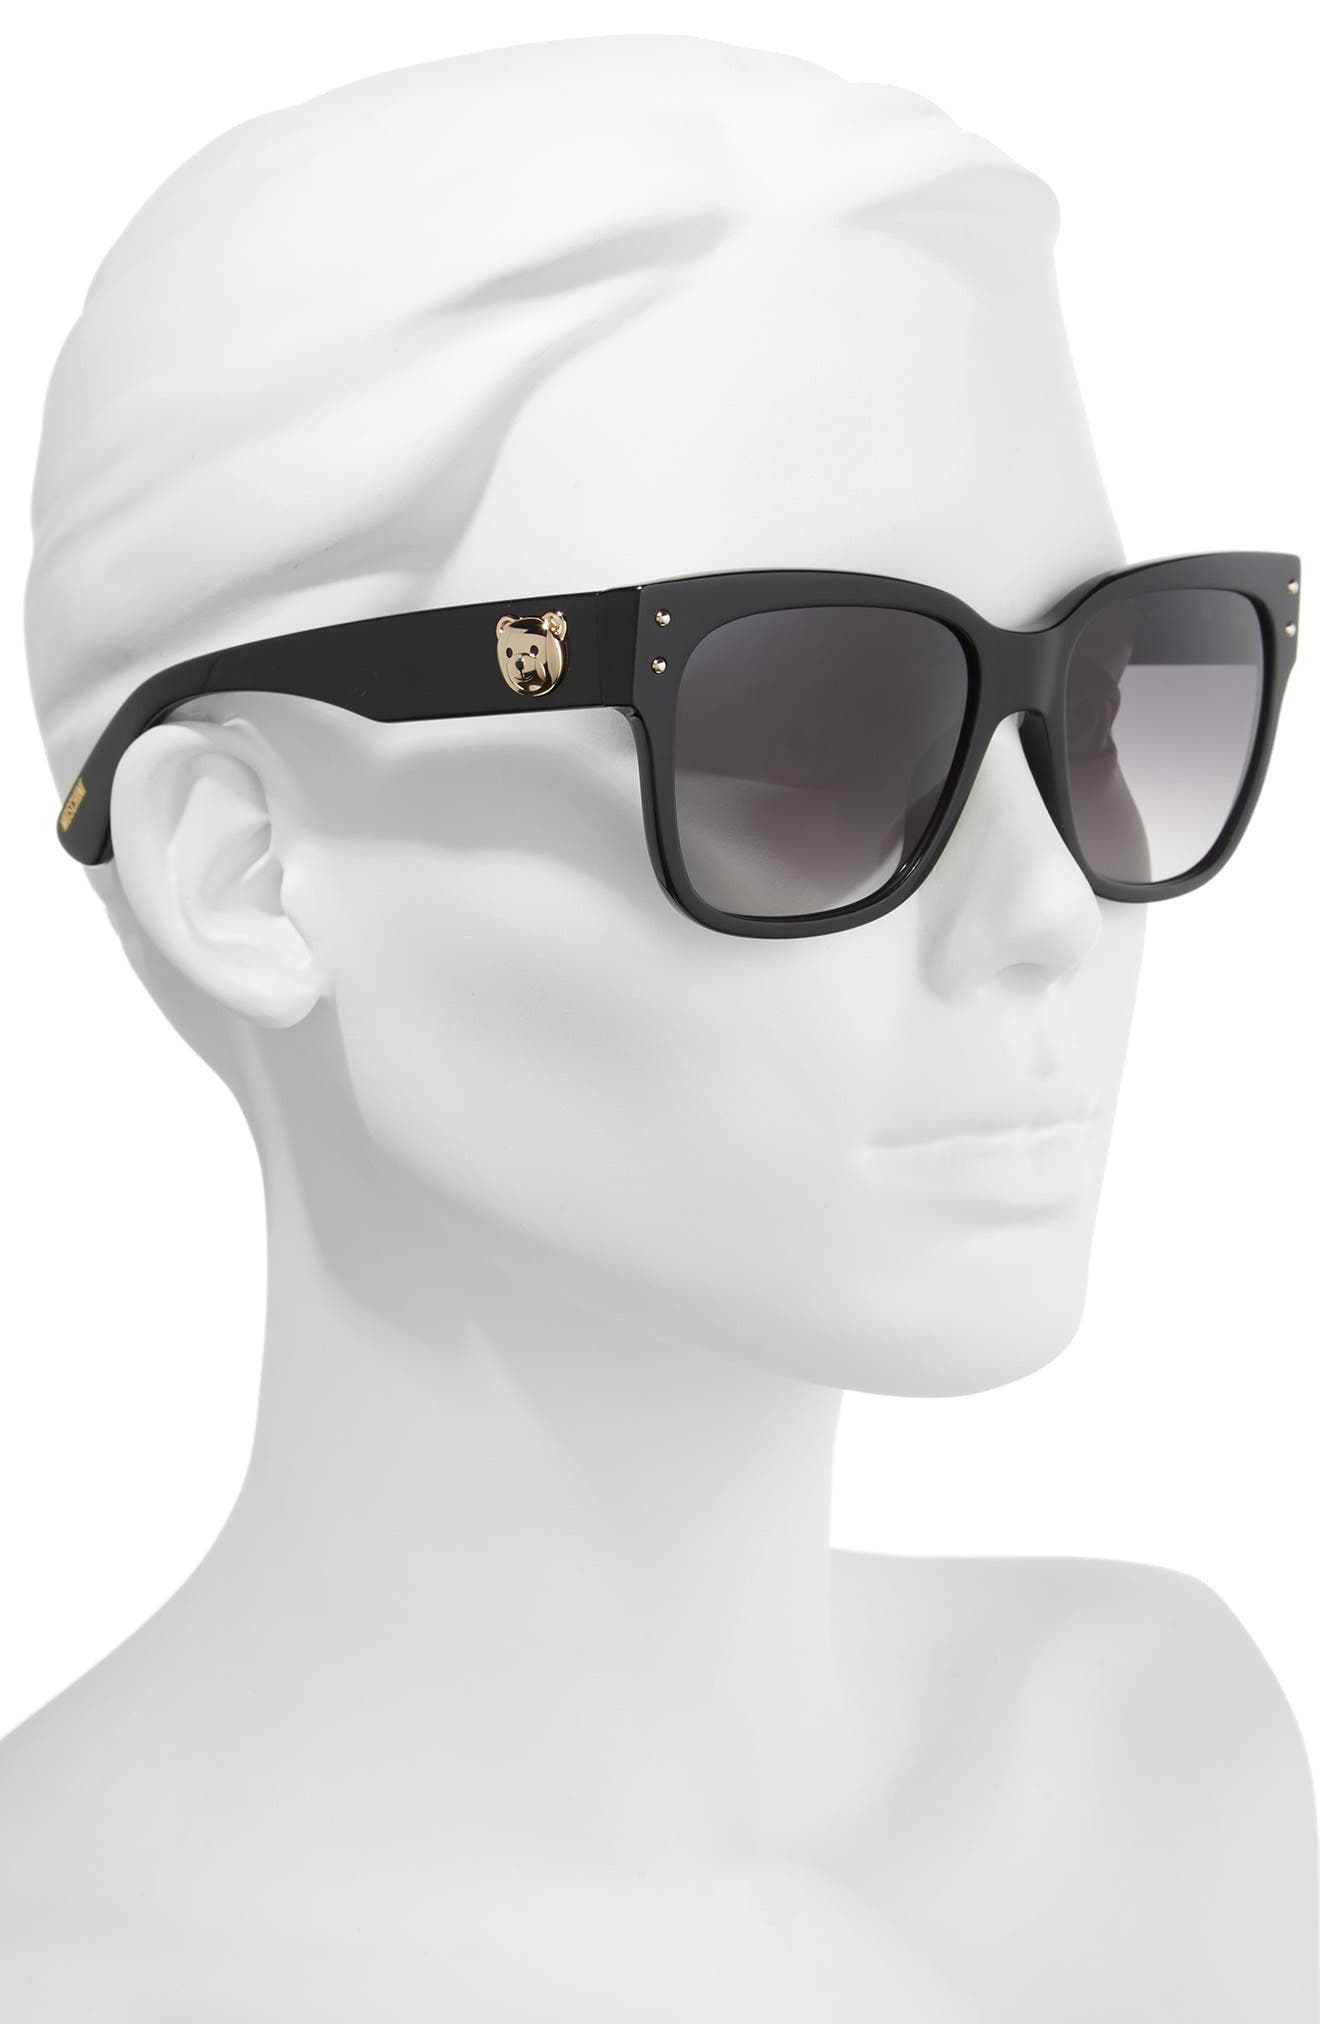 dcee22d6543bb Moschino Sunglasses for Women